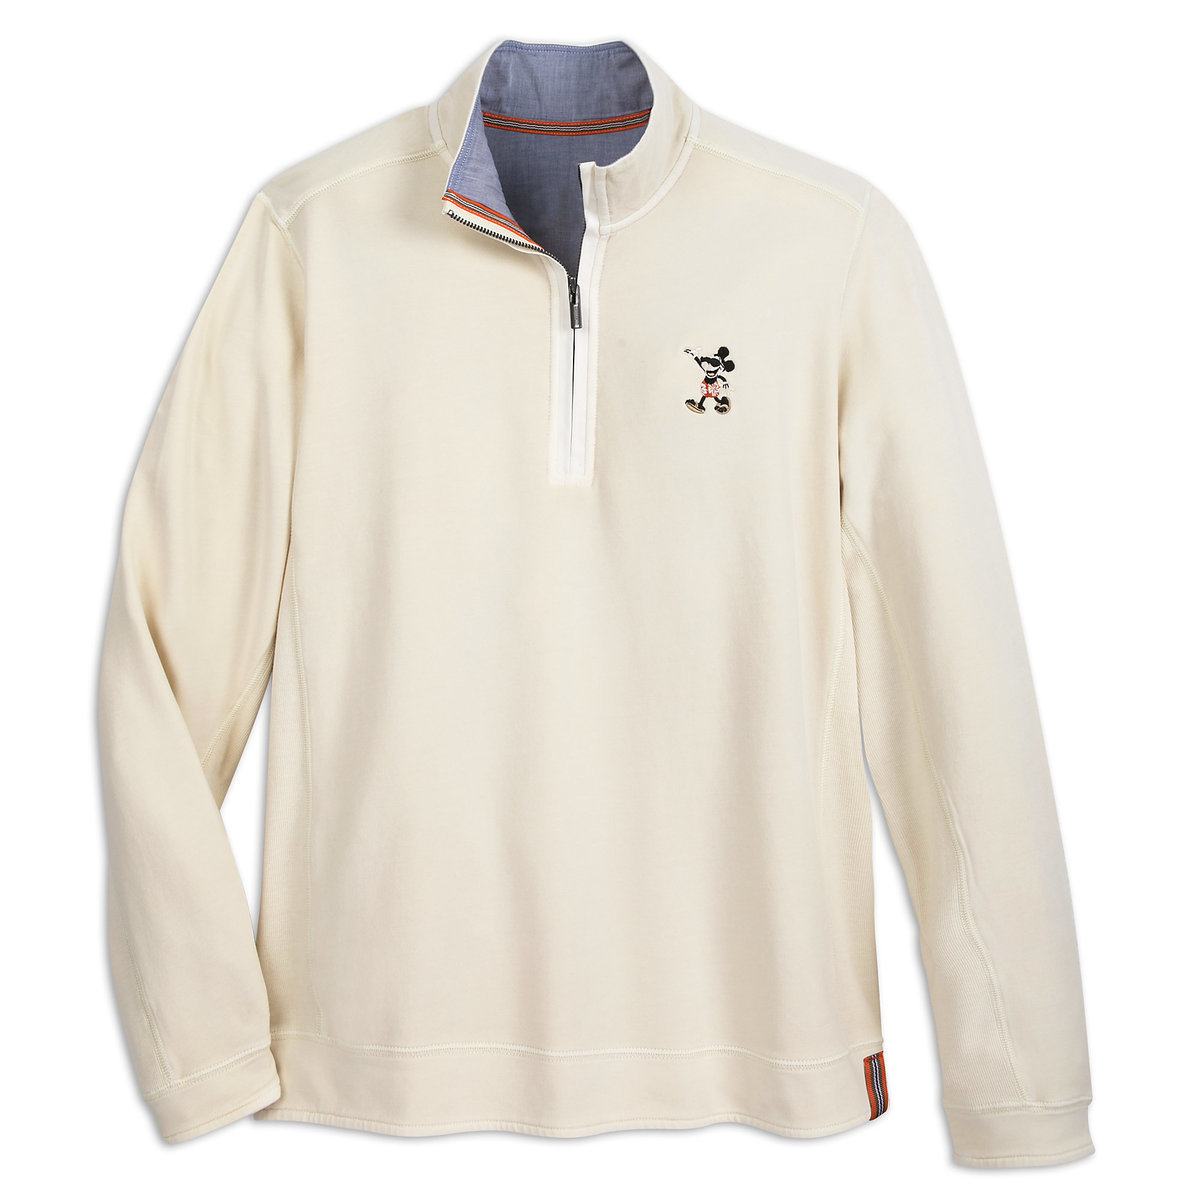 Mickey Mouse Fleece Pullover for Adults by Tommy Bahama - Cream ...